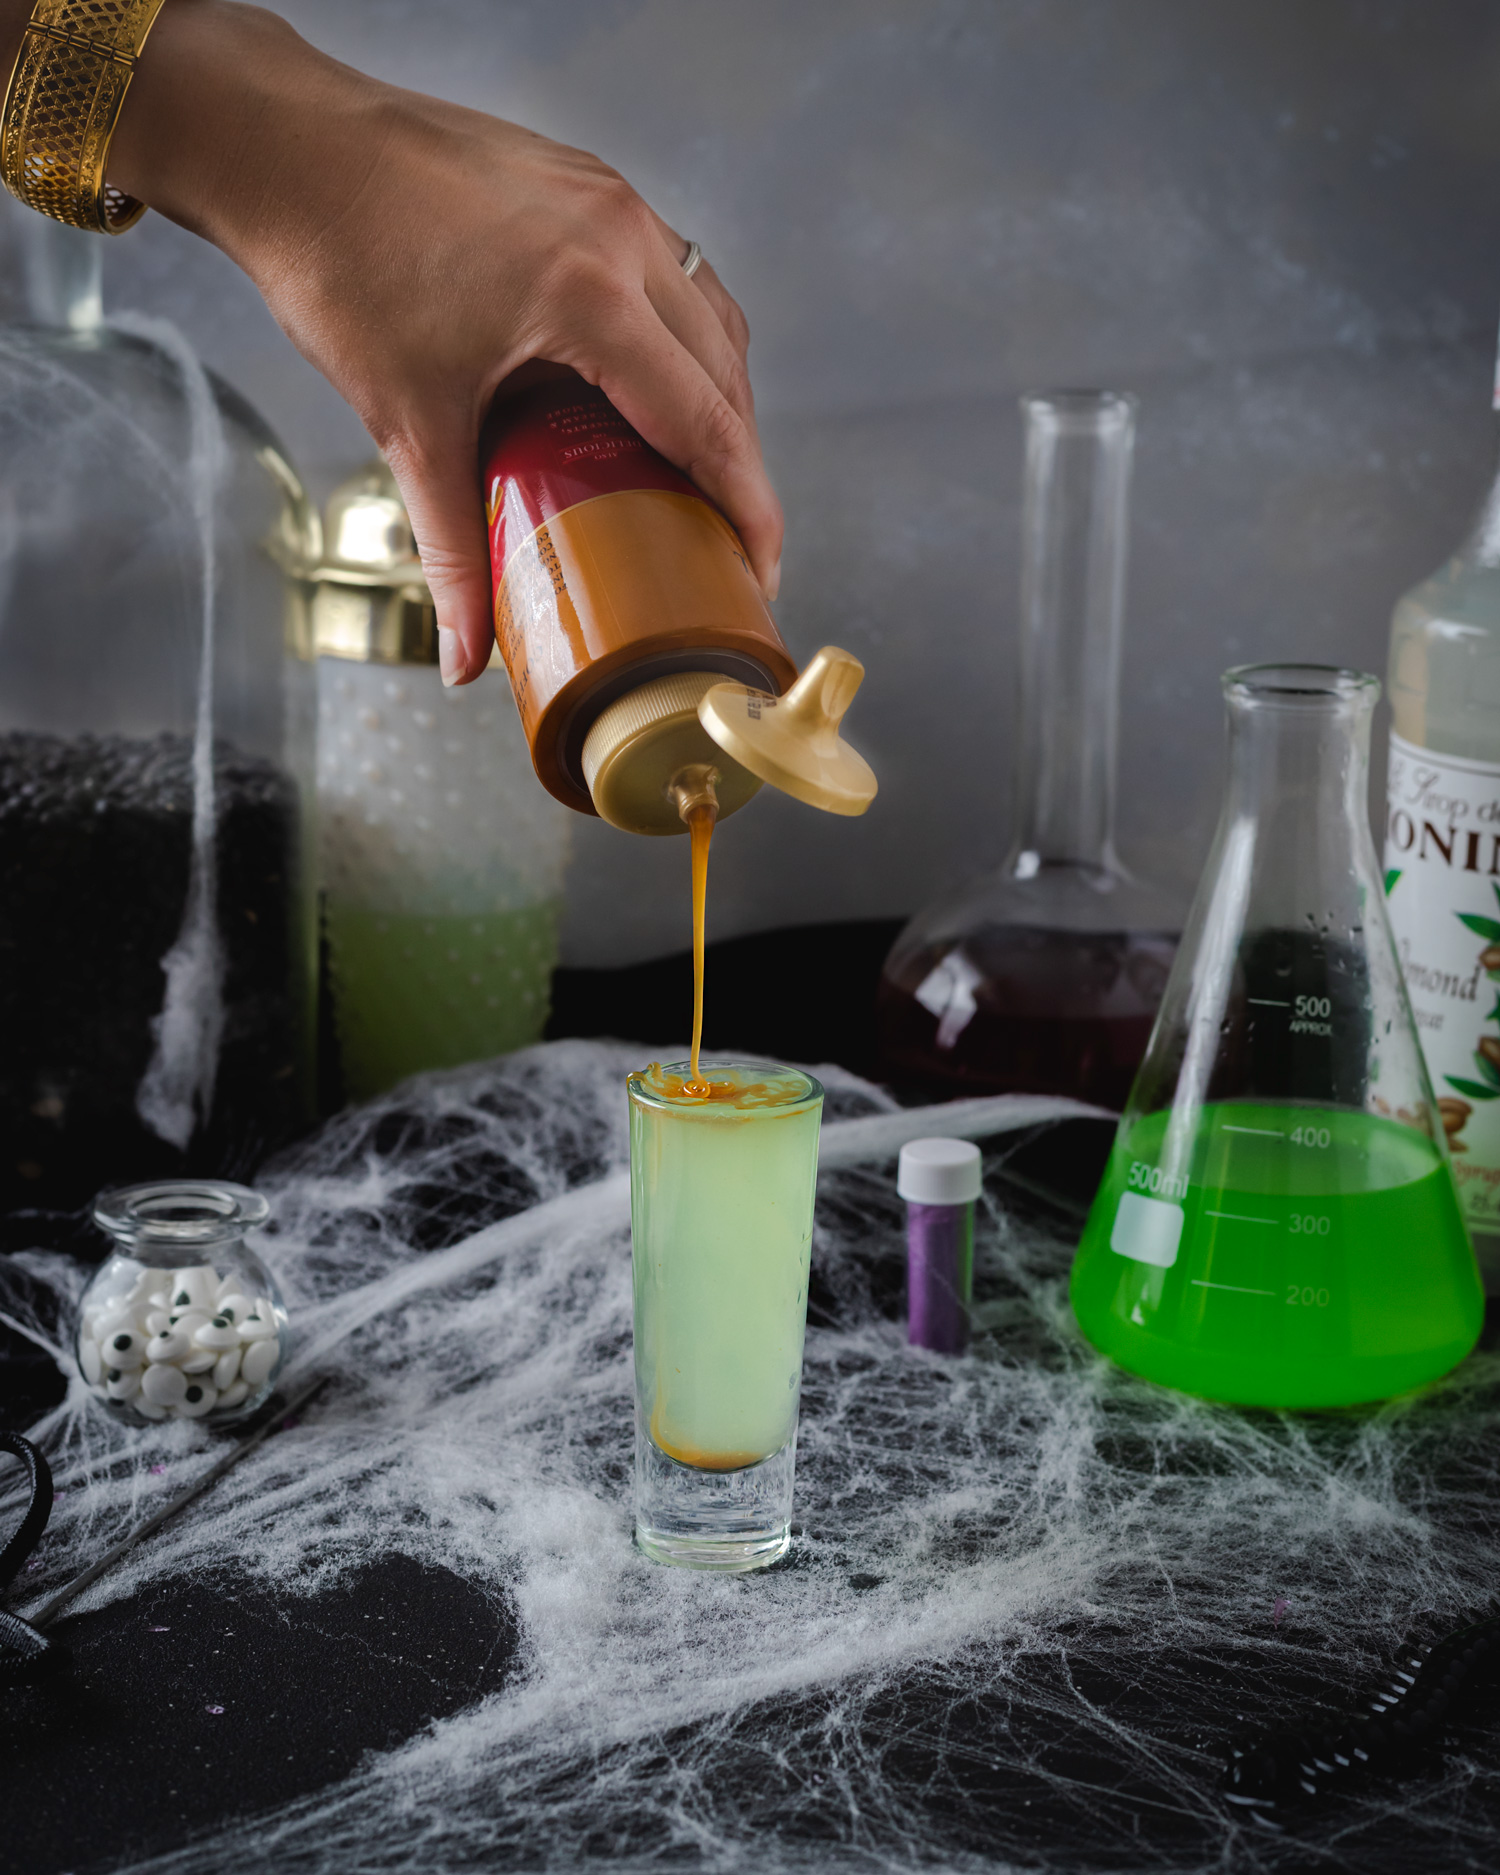 Bright green Halloween shot that tastes like caramel apples with almonds. Apple pucker, spiced rum, orgeat syrup, and caramel shot recipe for Halloween. #ElleTalk #Halloween #HalloweenRecipe #ShotRecipe #ApplePucker #SpicedRum #Caramel #Orgeat #CocktailRecipe